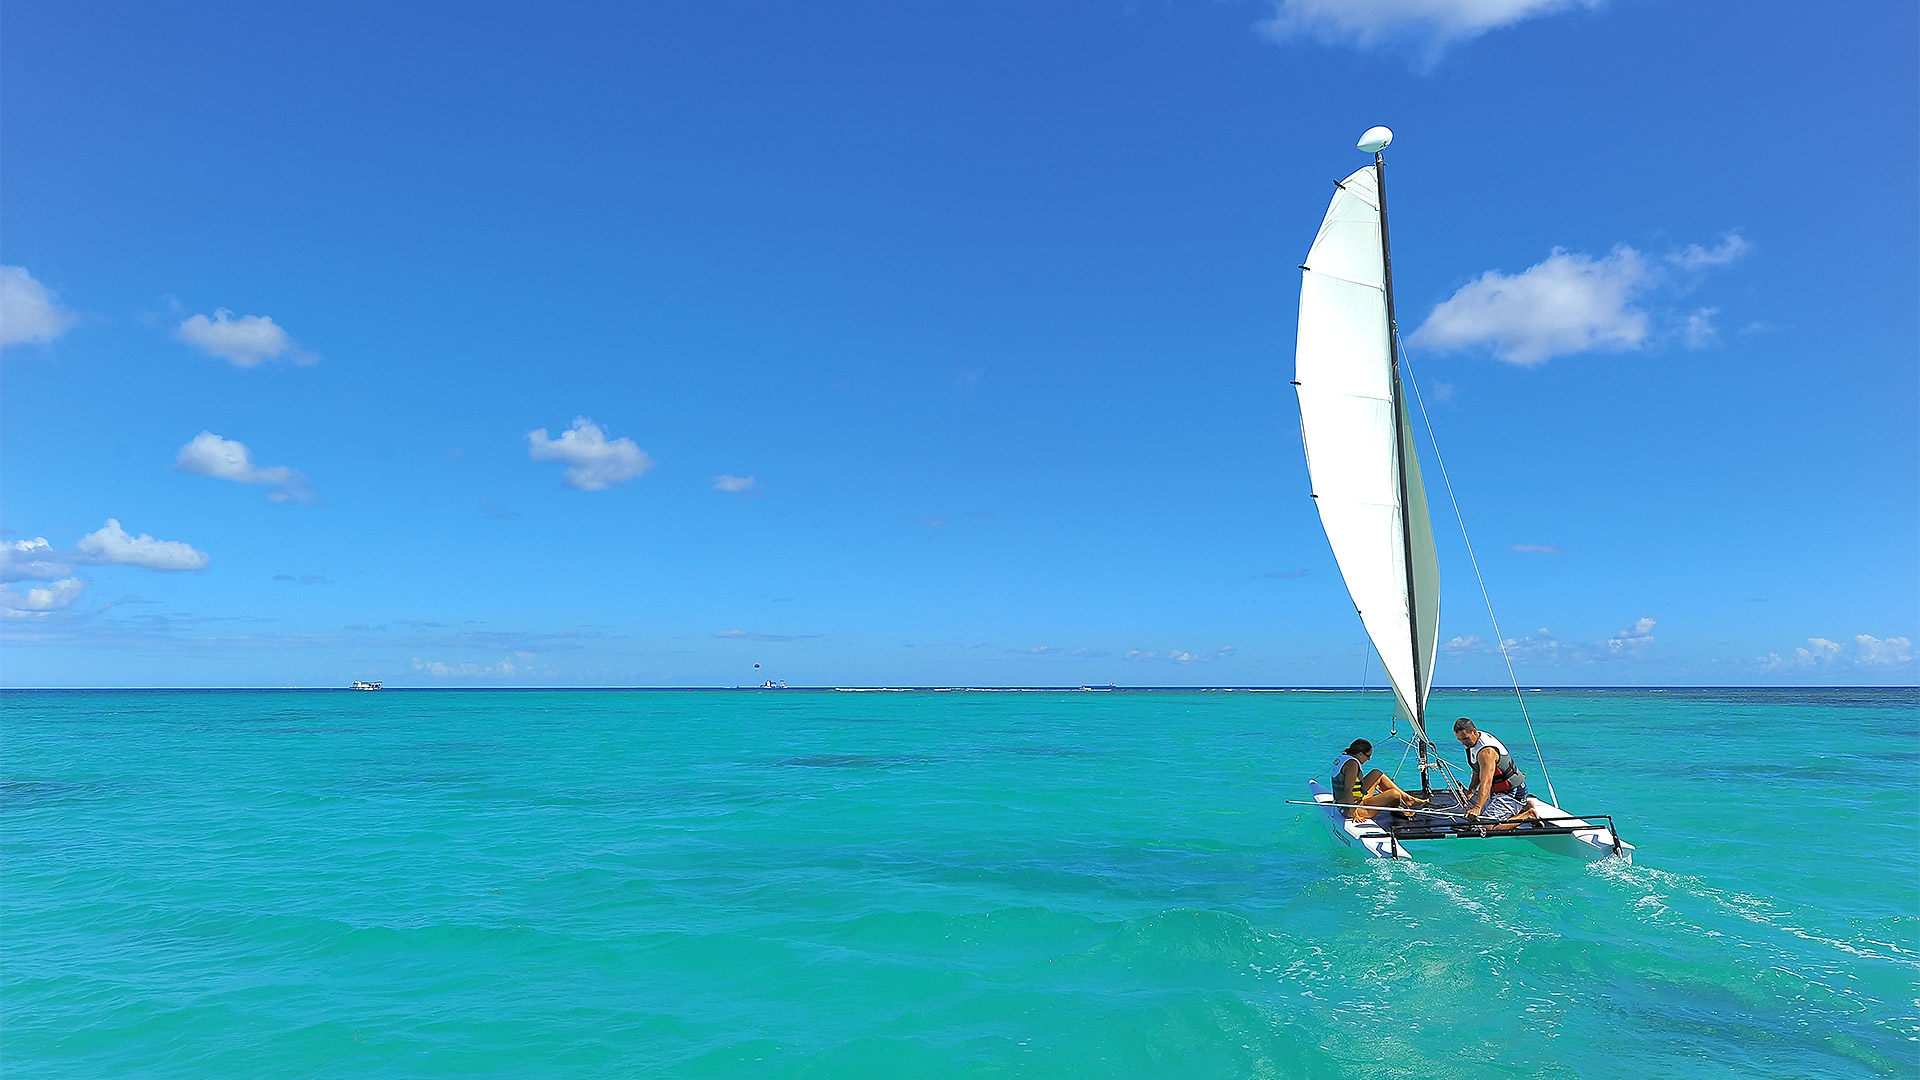 Water Sports - Royal Palm Mauritius